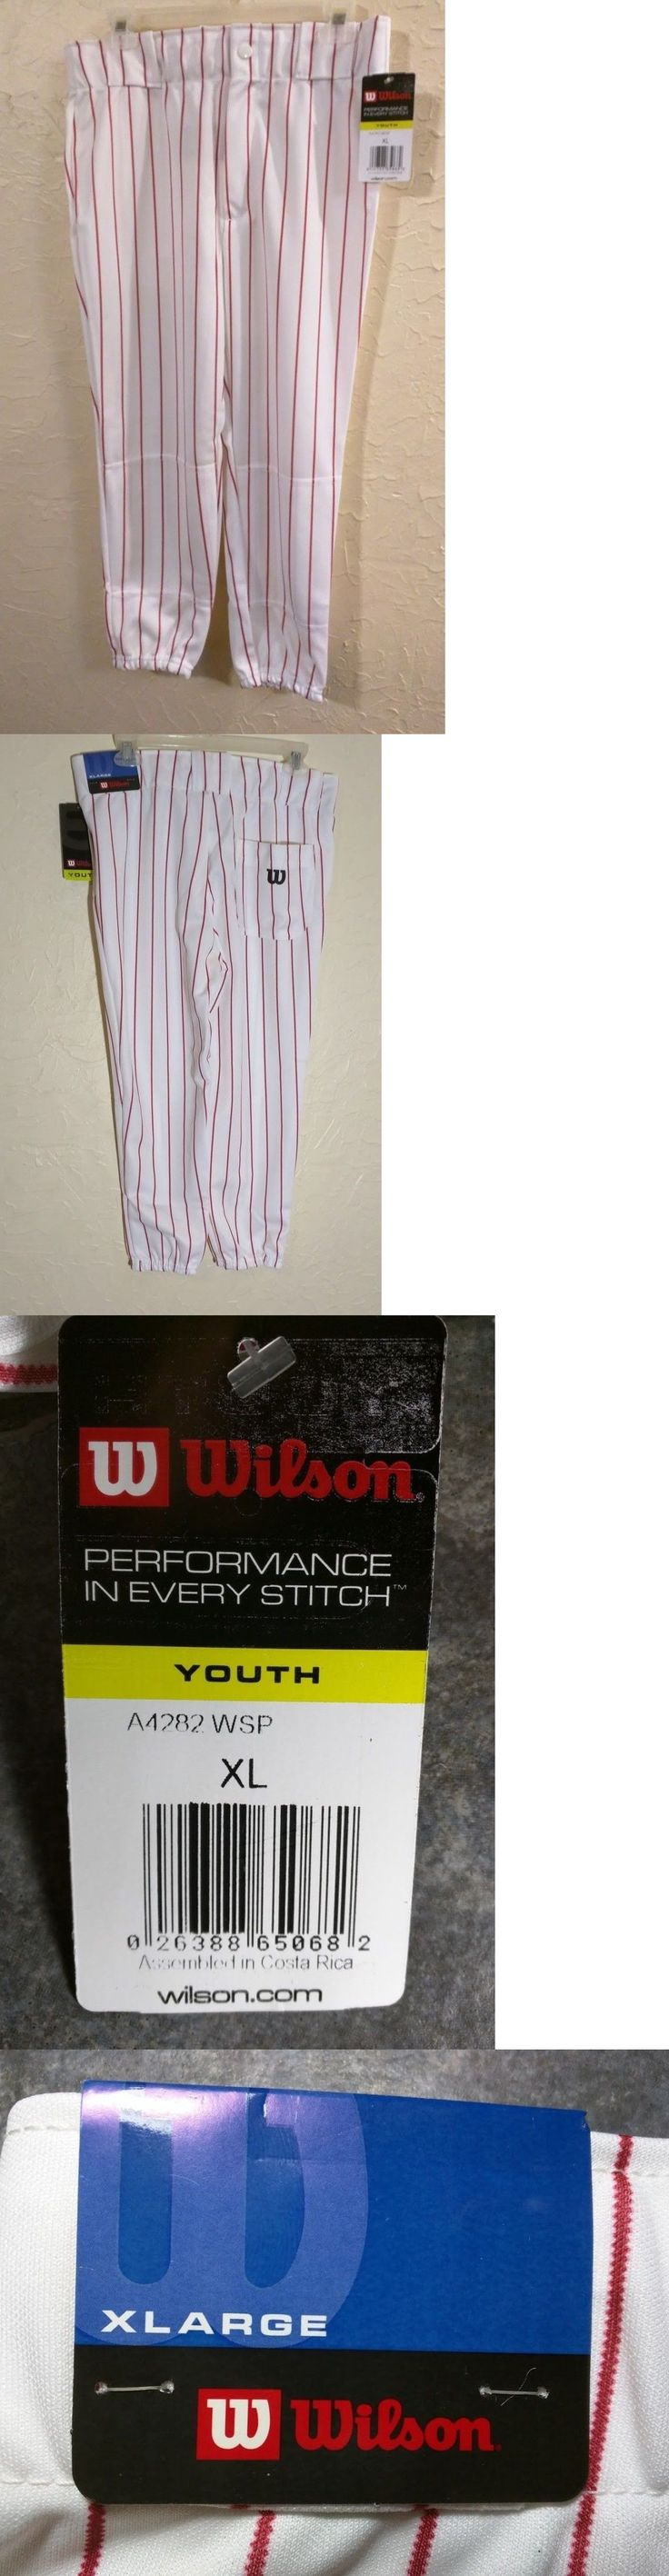 Baseball Pants 181349: New Wilson Youth Baseball Pants White Pinstripe Red Button Belt Size Xl -> BUY IT NOW ONLY: $46 on eBay!